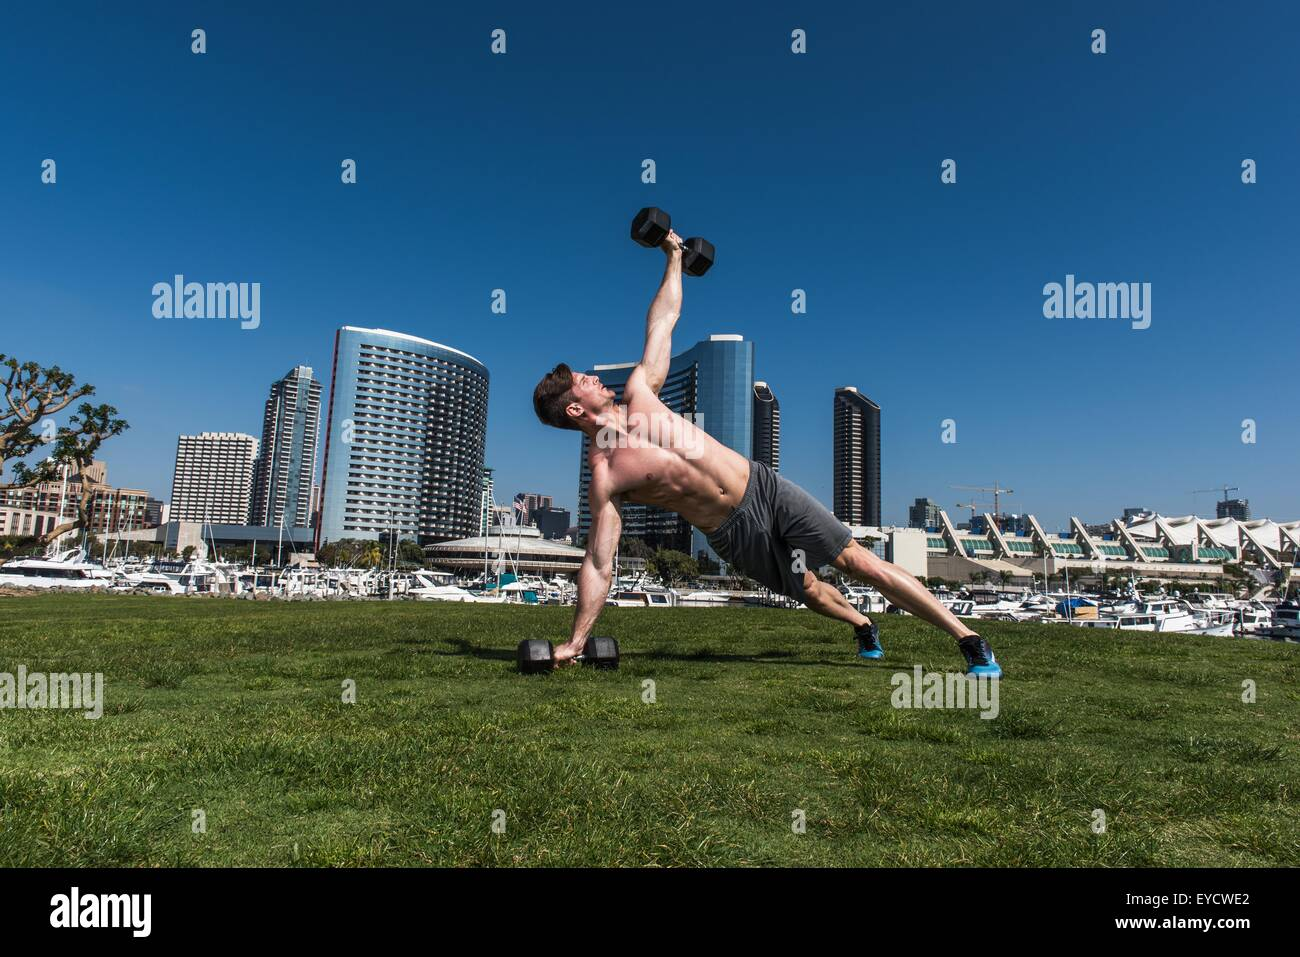 Mid adult man doing one arm push up and lifting dumb bells - Stock Image